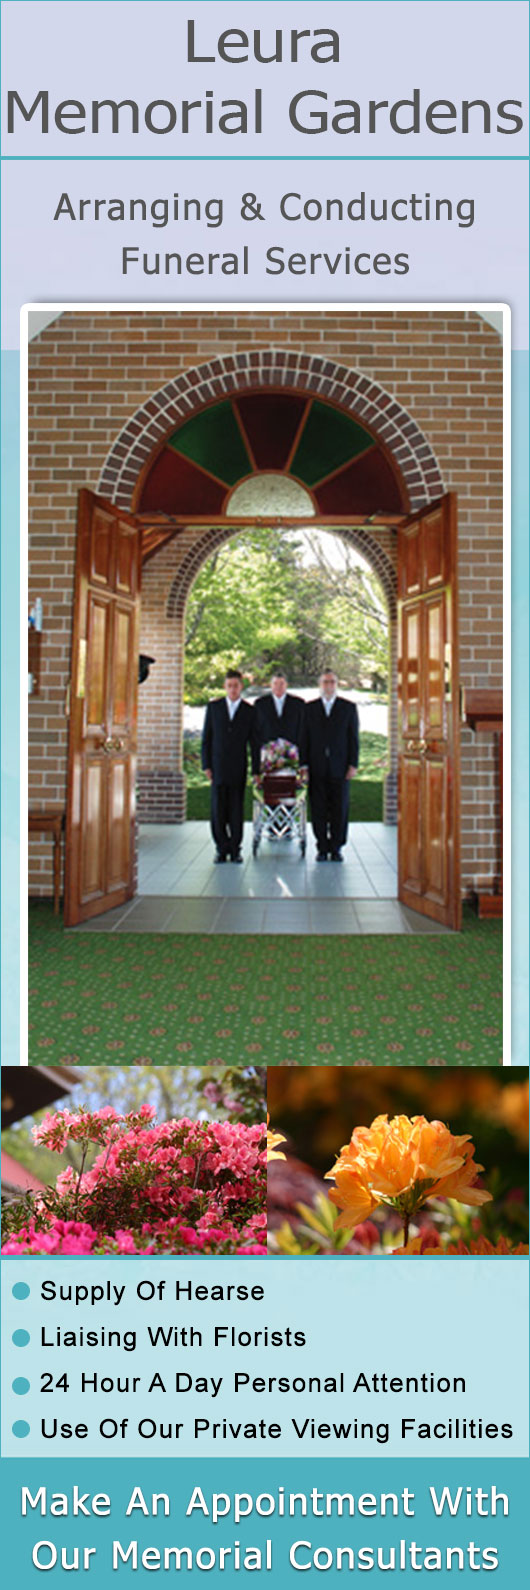 leura memorial gardens funeral service cremation 1 kitchener - Memorial Garden Funeral Home